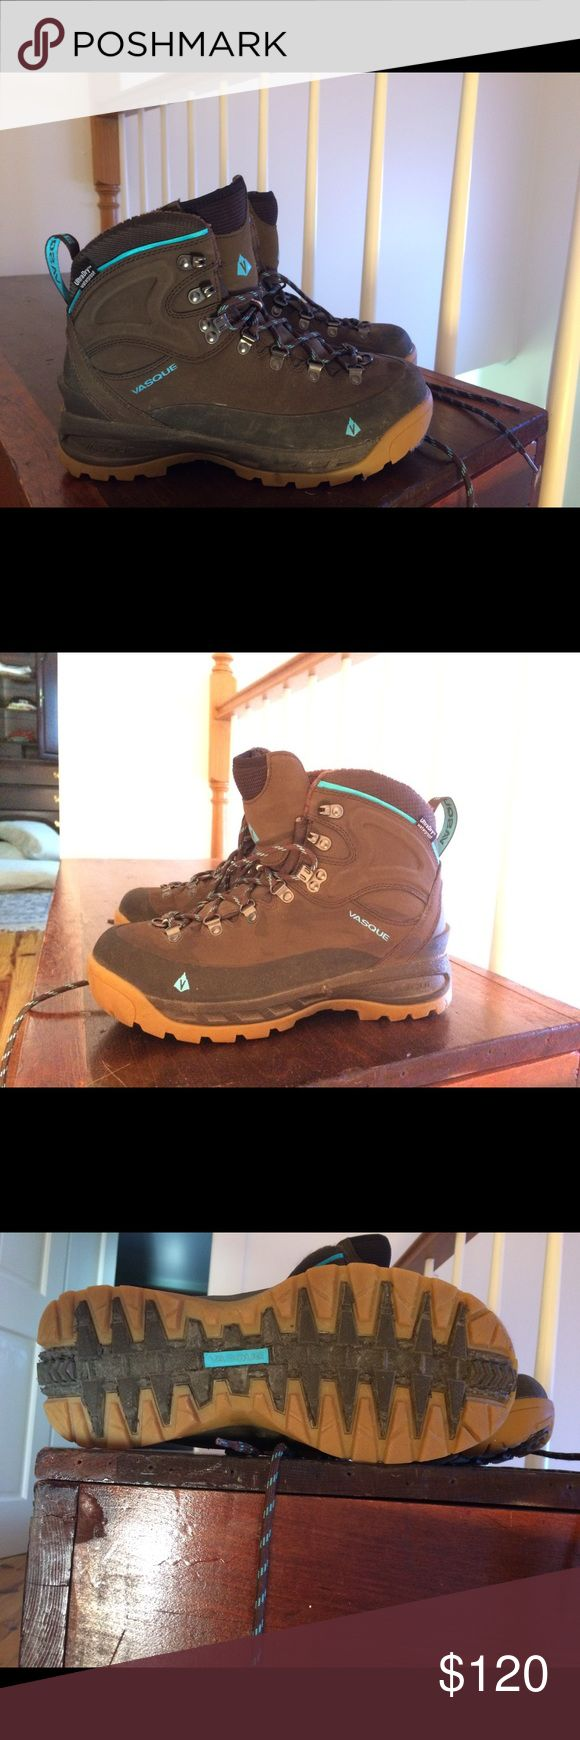 Vasque hiking boots Vasque Snowblime UltraDry Winter Boot - Women's.  Only used twice Vasque Shoes